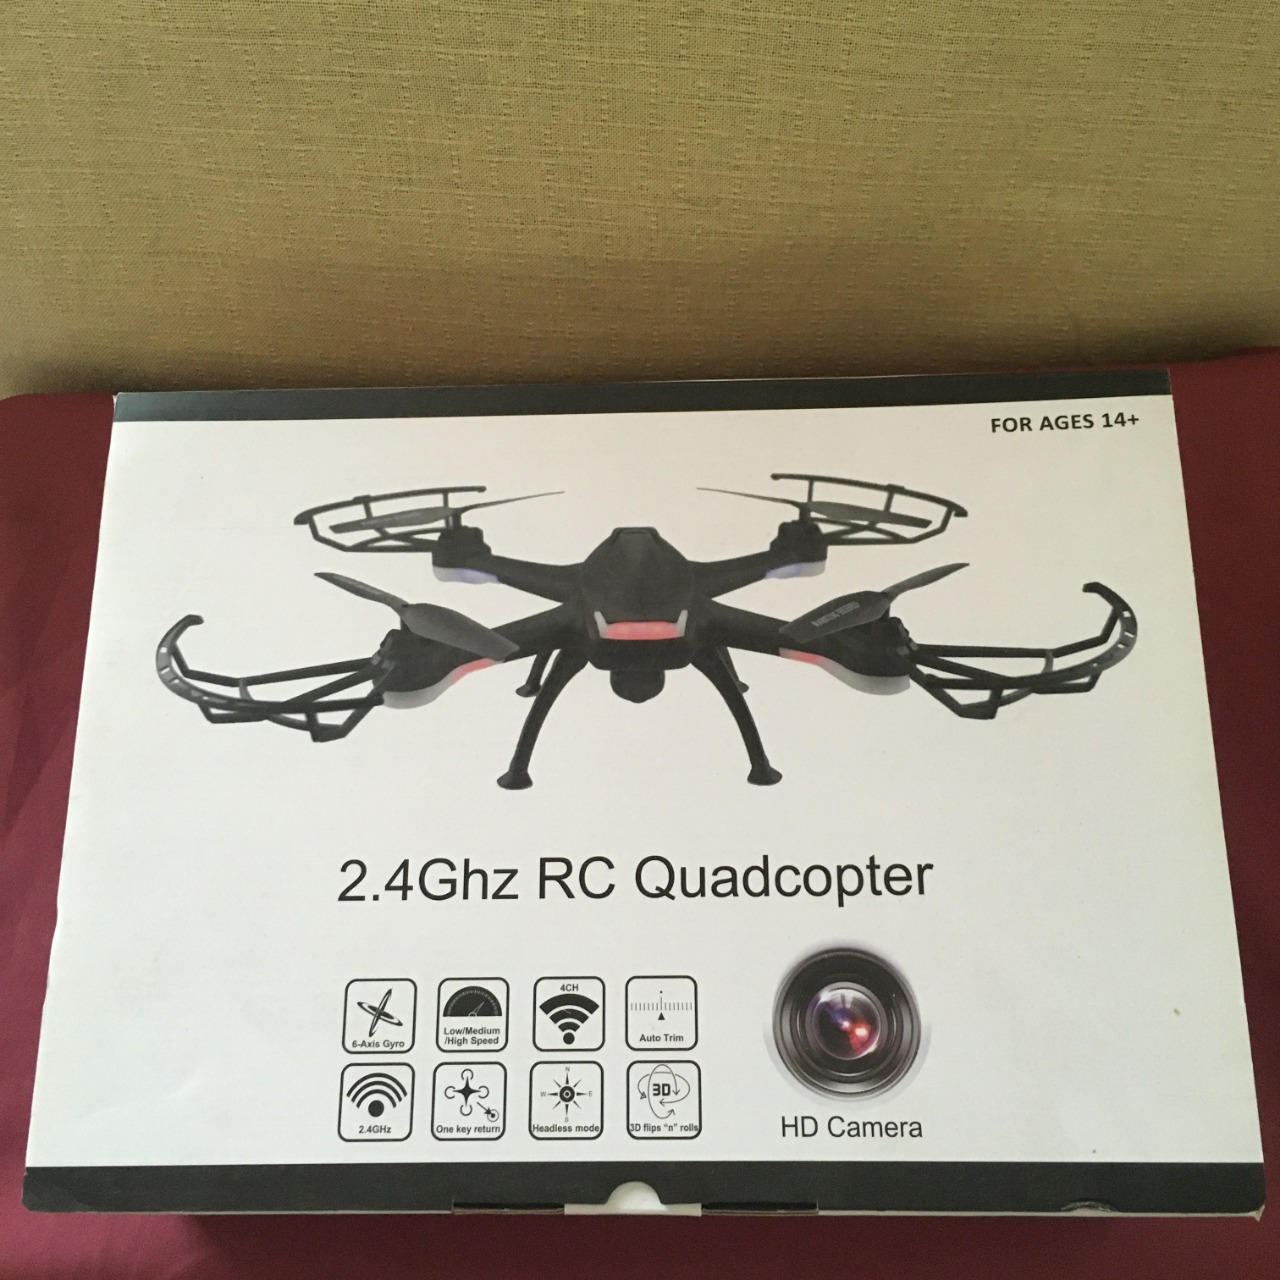 2.4Ghz RC Quadcopter With HD Camera, Brand New